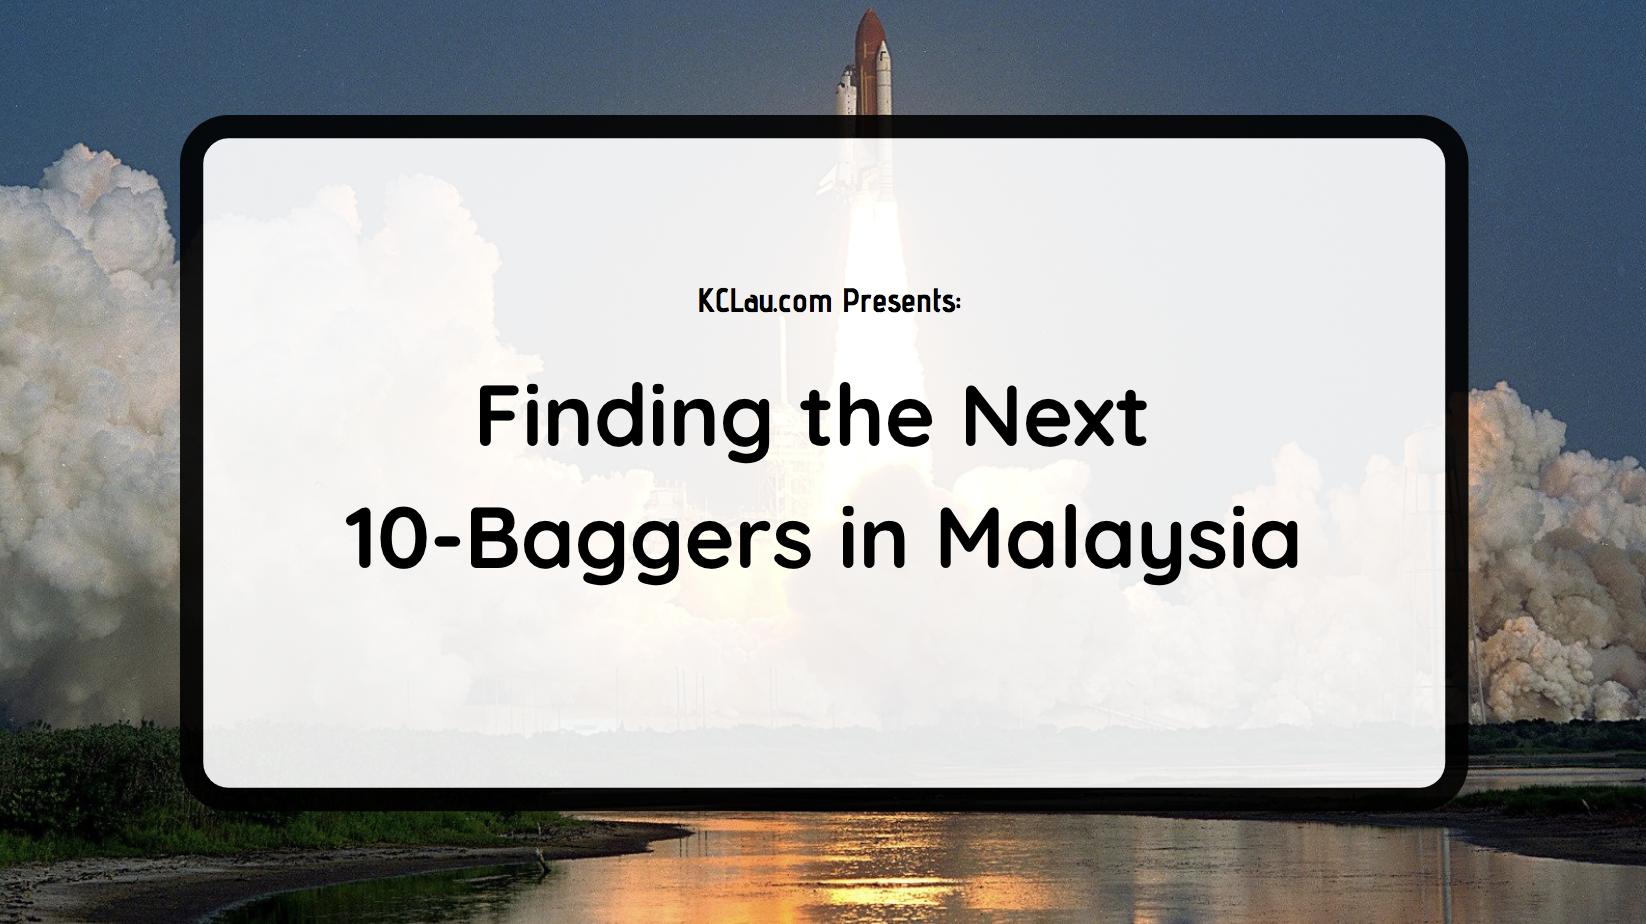 Finding the Next 10-Baggers in Malaysia